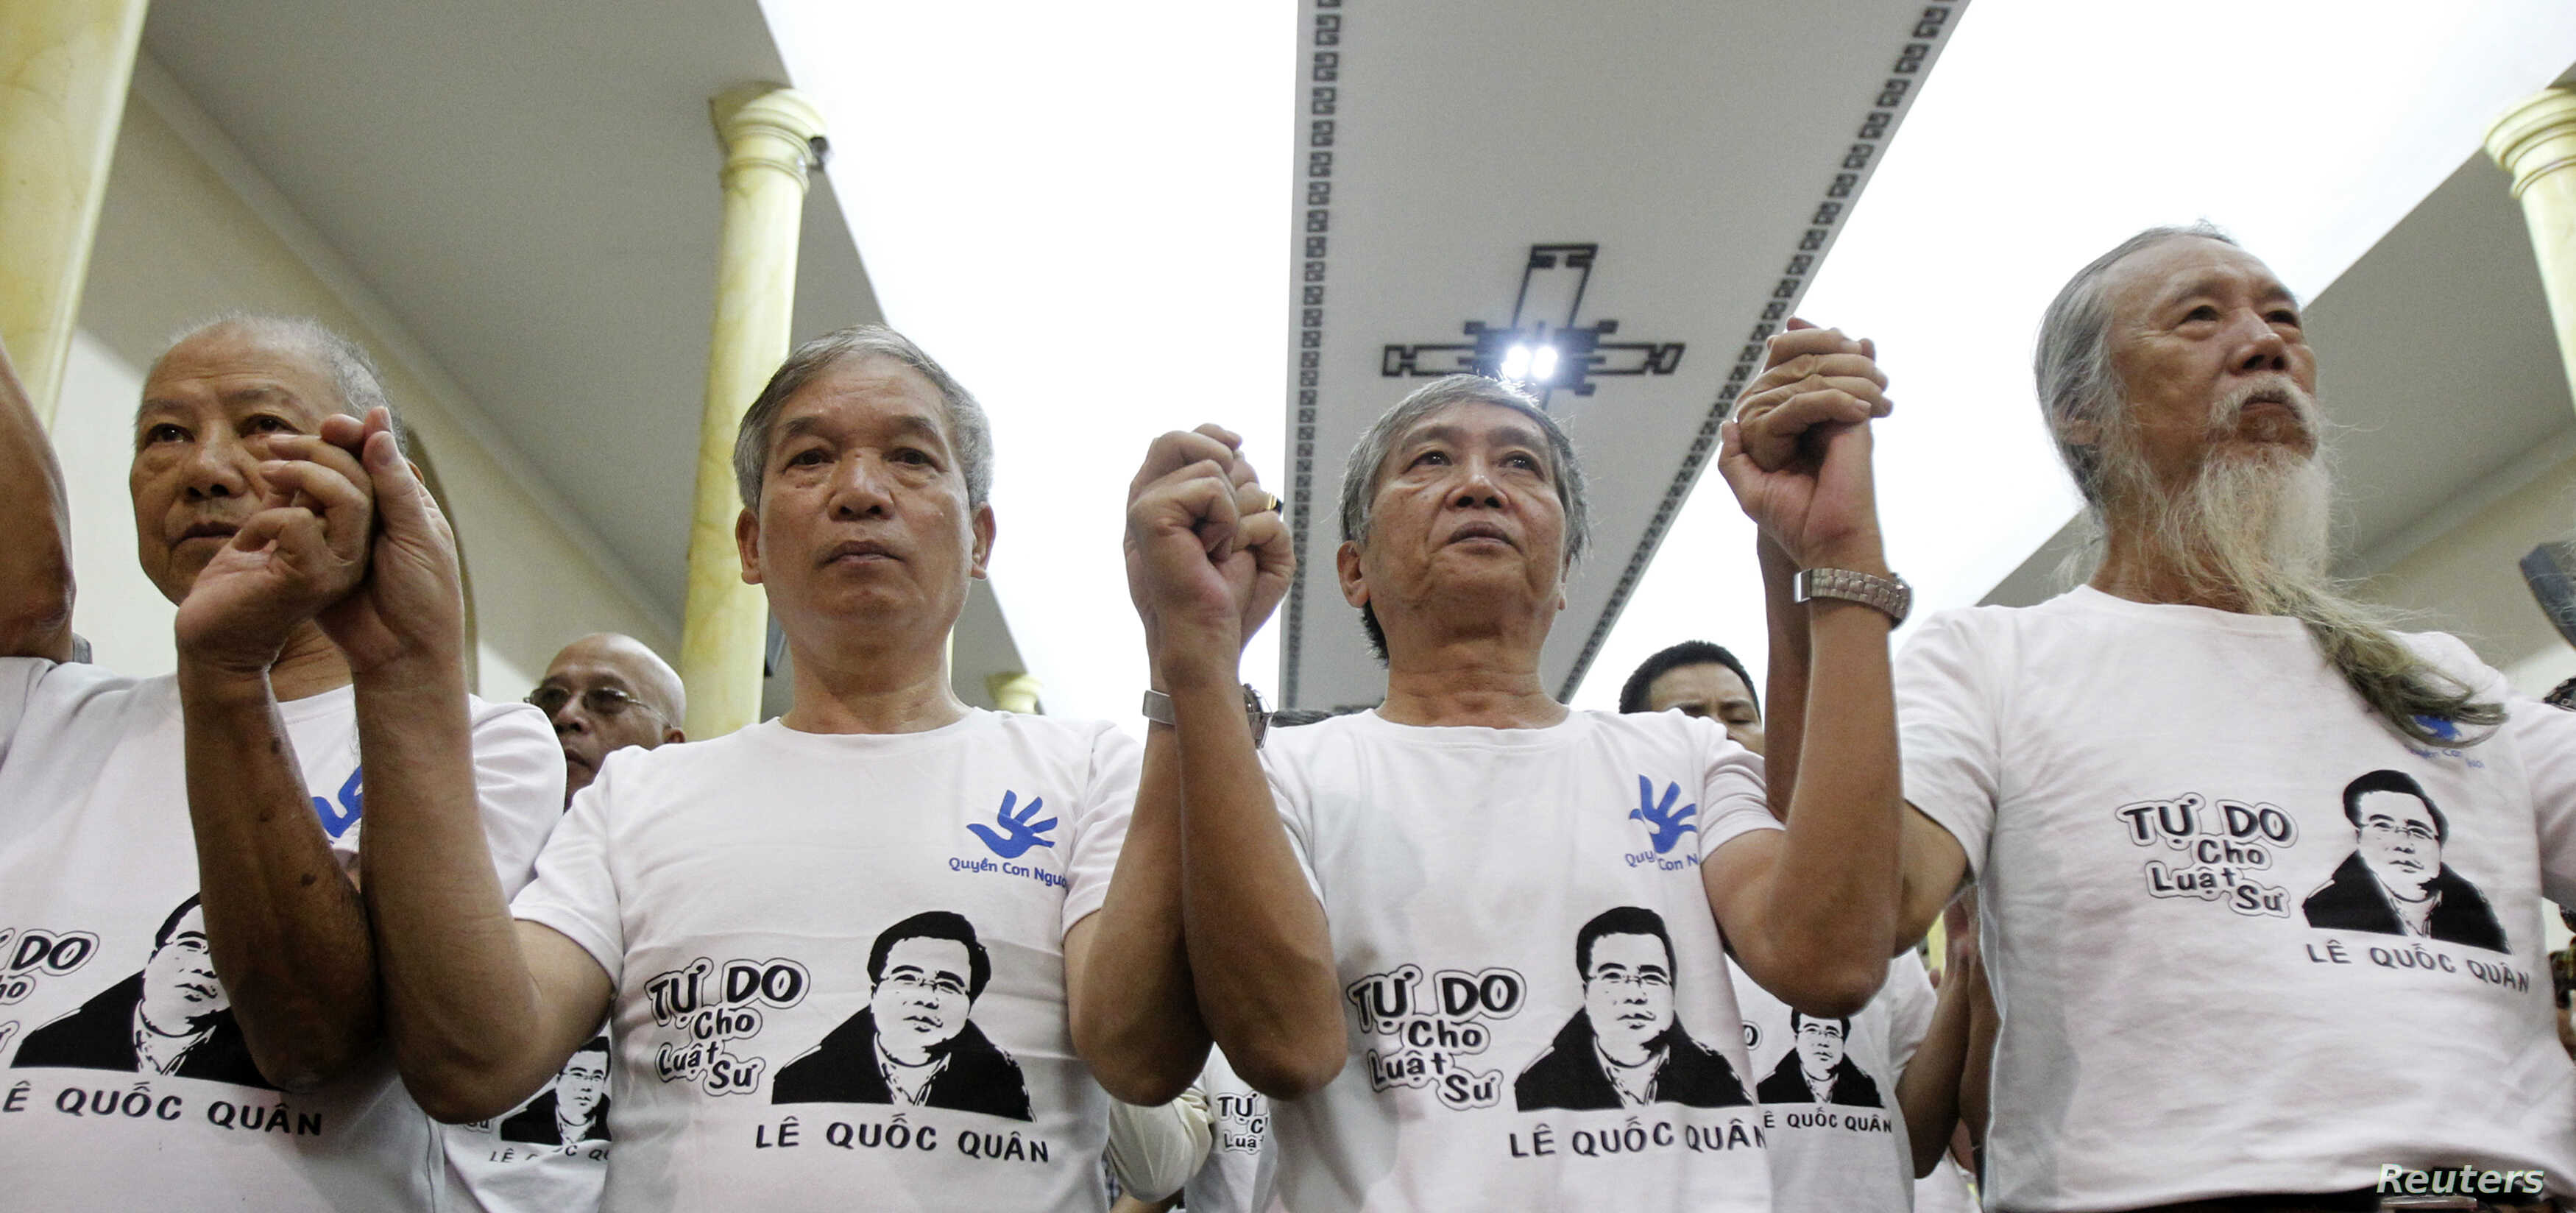 Friends and supporters wearing t-shirts with the image of lawyer Le Quoc Quan hold hands while attending a mass calling for Quan to be freed at Thai Ha church in Hanoi September 29, 2013. Participants during the mass prayer also called for justice fo